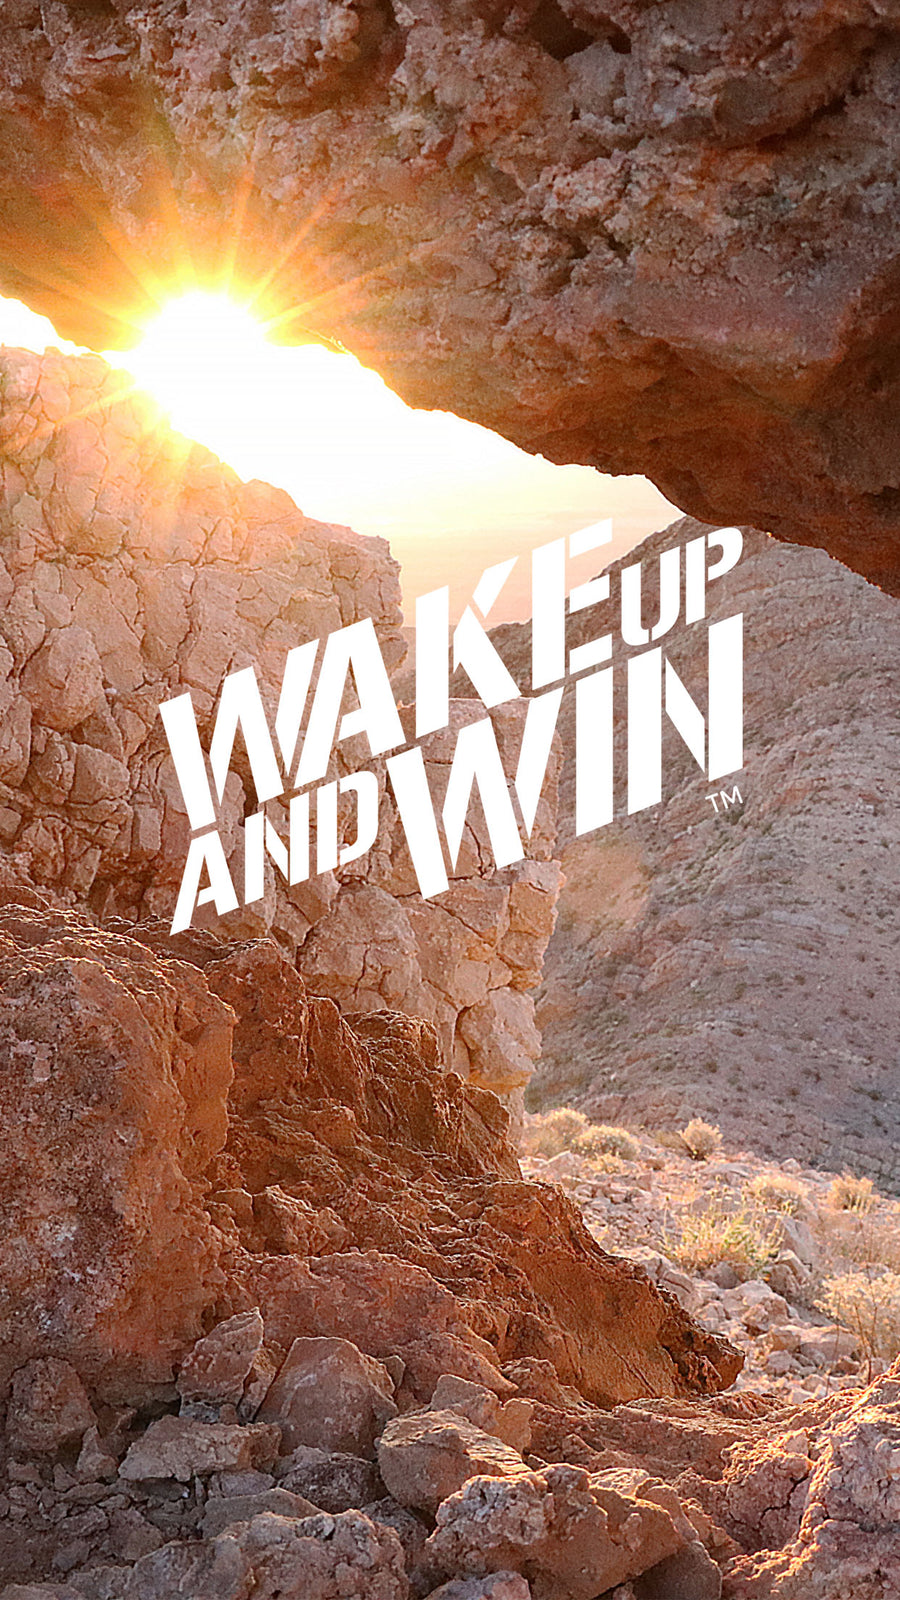 The Light Wake Up And Win Wallpaper